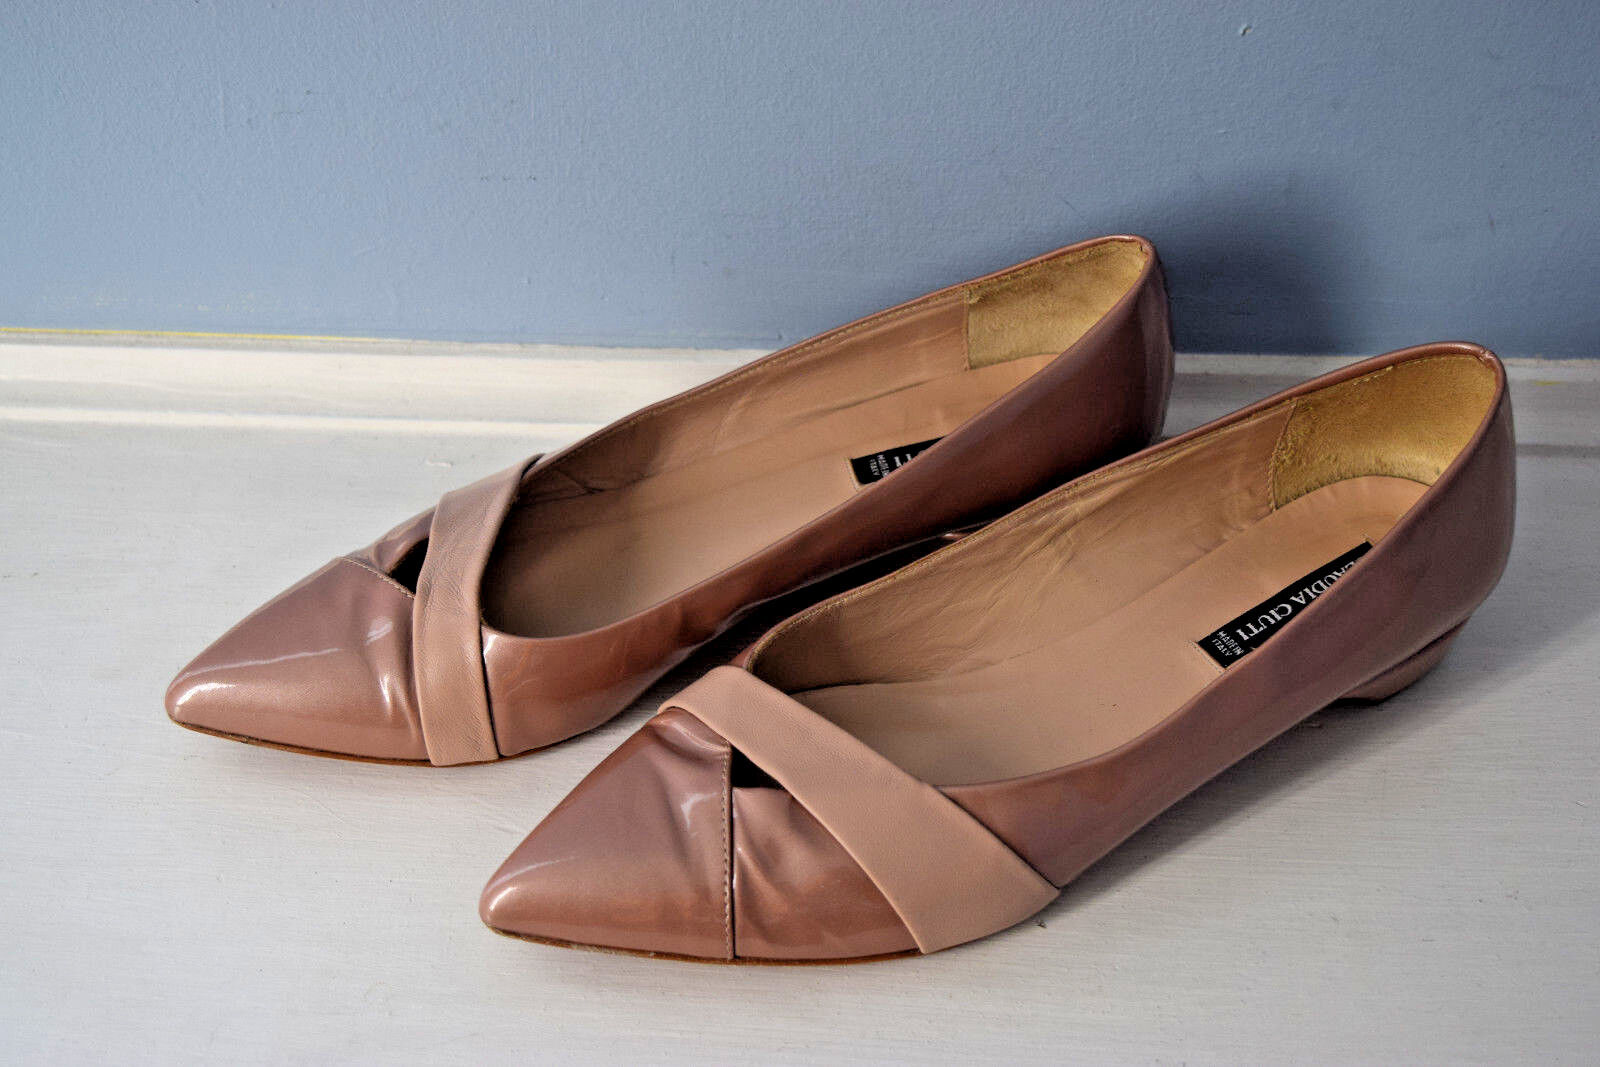 Claudia Ciuti Leather Italy Mauve Pink Patent Leather Ciuti Ballet Flat 7.5 M Excellent Career 58a37a